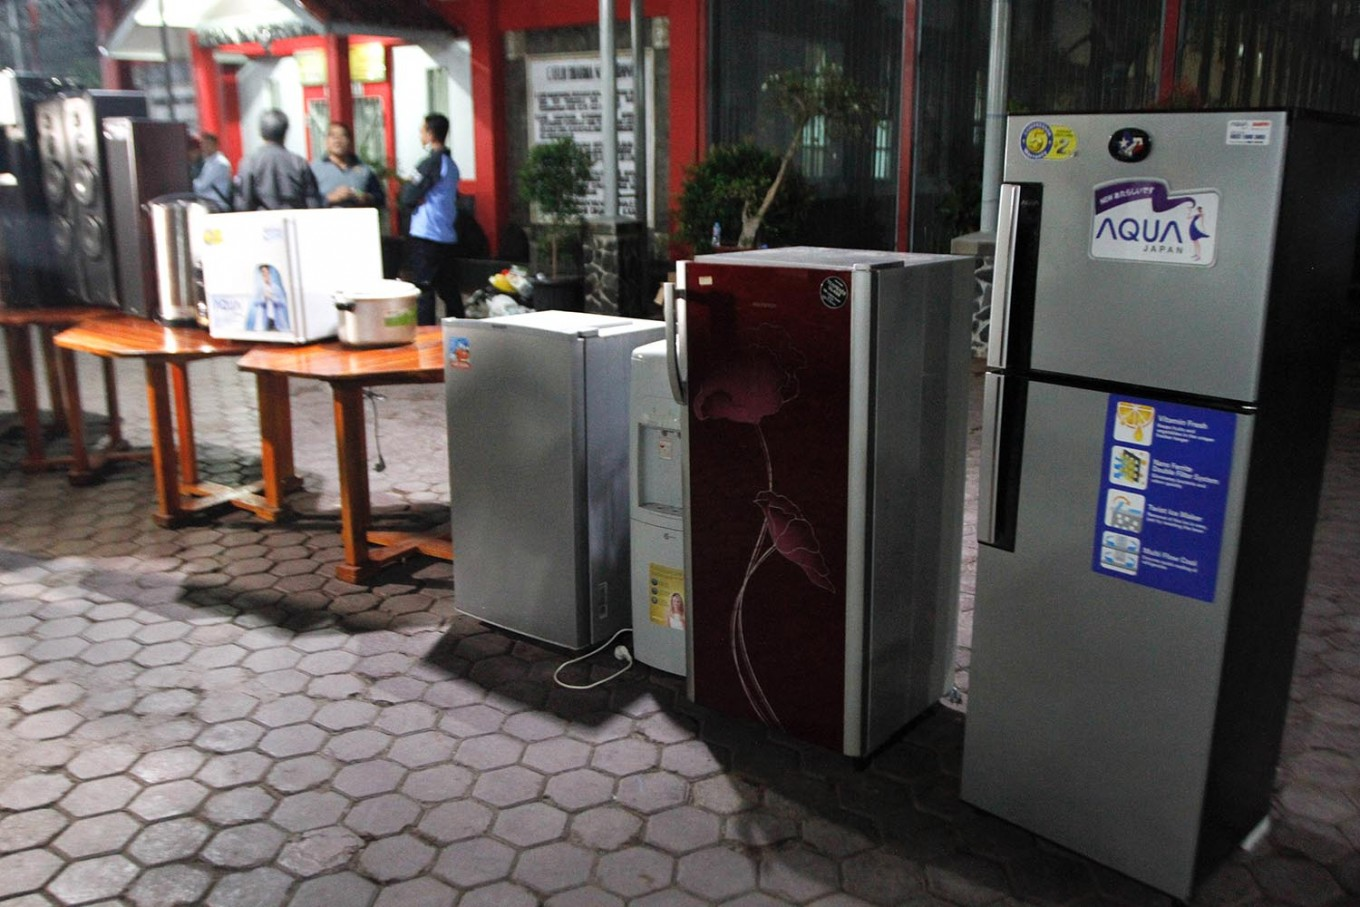 Evidence: Refrigerators and other electronic equipment are displayed on Sunday evening, July 22, 2018 at Sukamiskin Penitentiary in Bandung, West Java, after they were confiscated from several cells by the Corruption Eradication Commission (KPK). The commission, which is investigating alleged bribery in exchange for special facilities for inmates, has arrested prison warden Wahid Husen, a prison guard and two inmates on suspicion of graft. JP/Arya Dipa